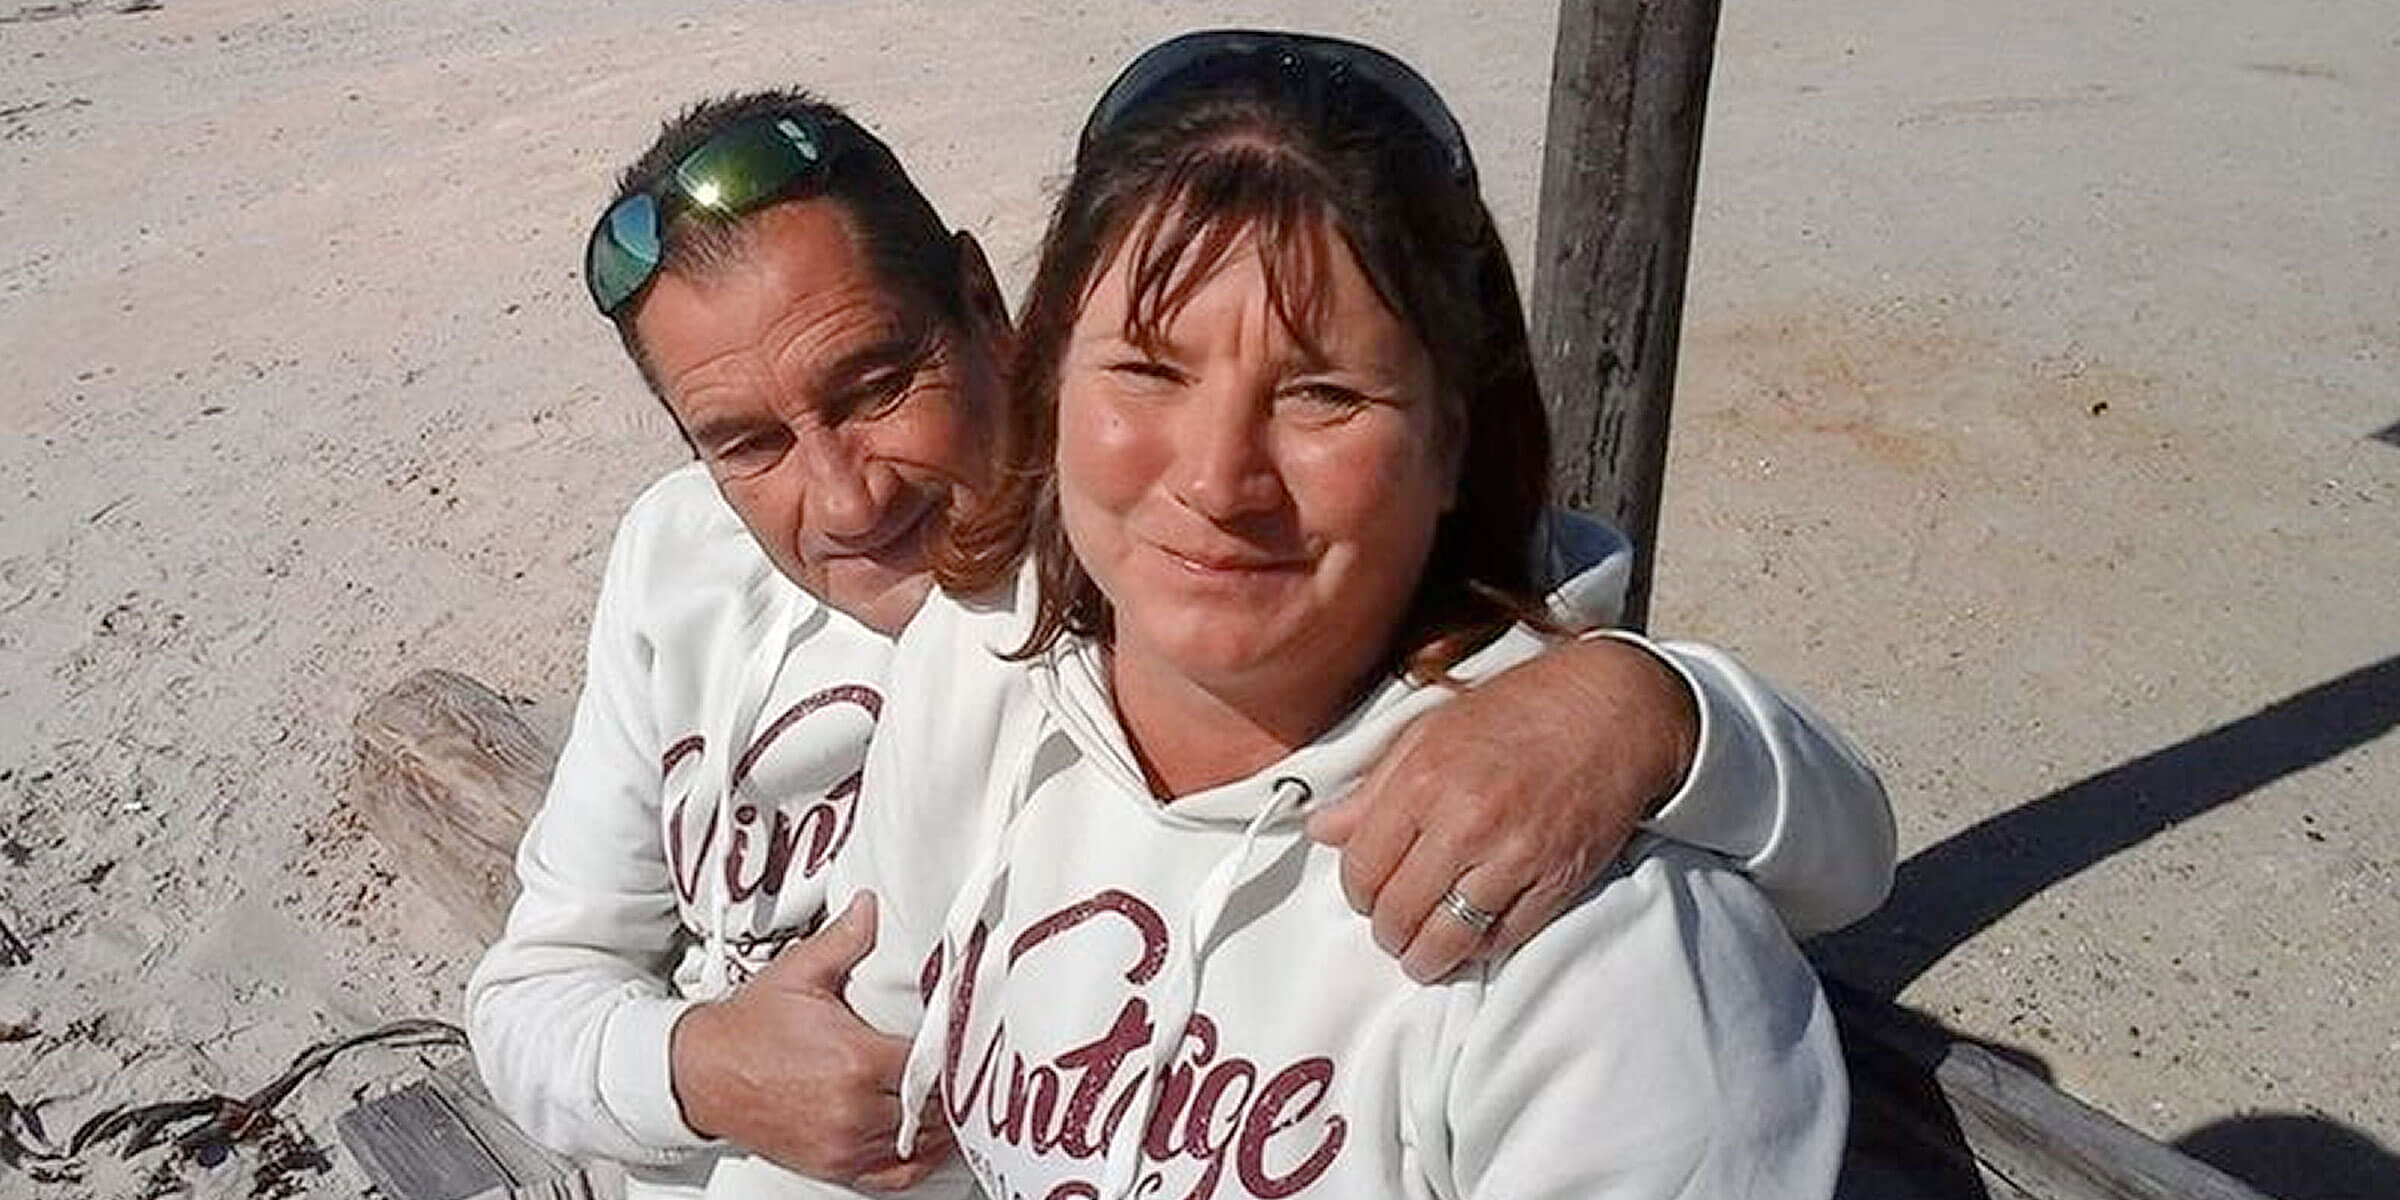 Tony Hilliar, 54, and Alida Fouche, 42, died in South Africa after drinking home brewed beer